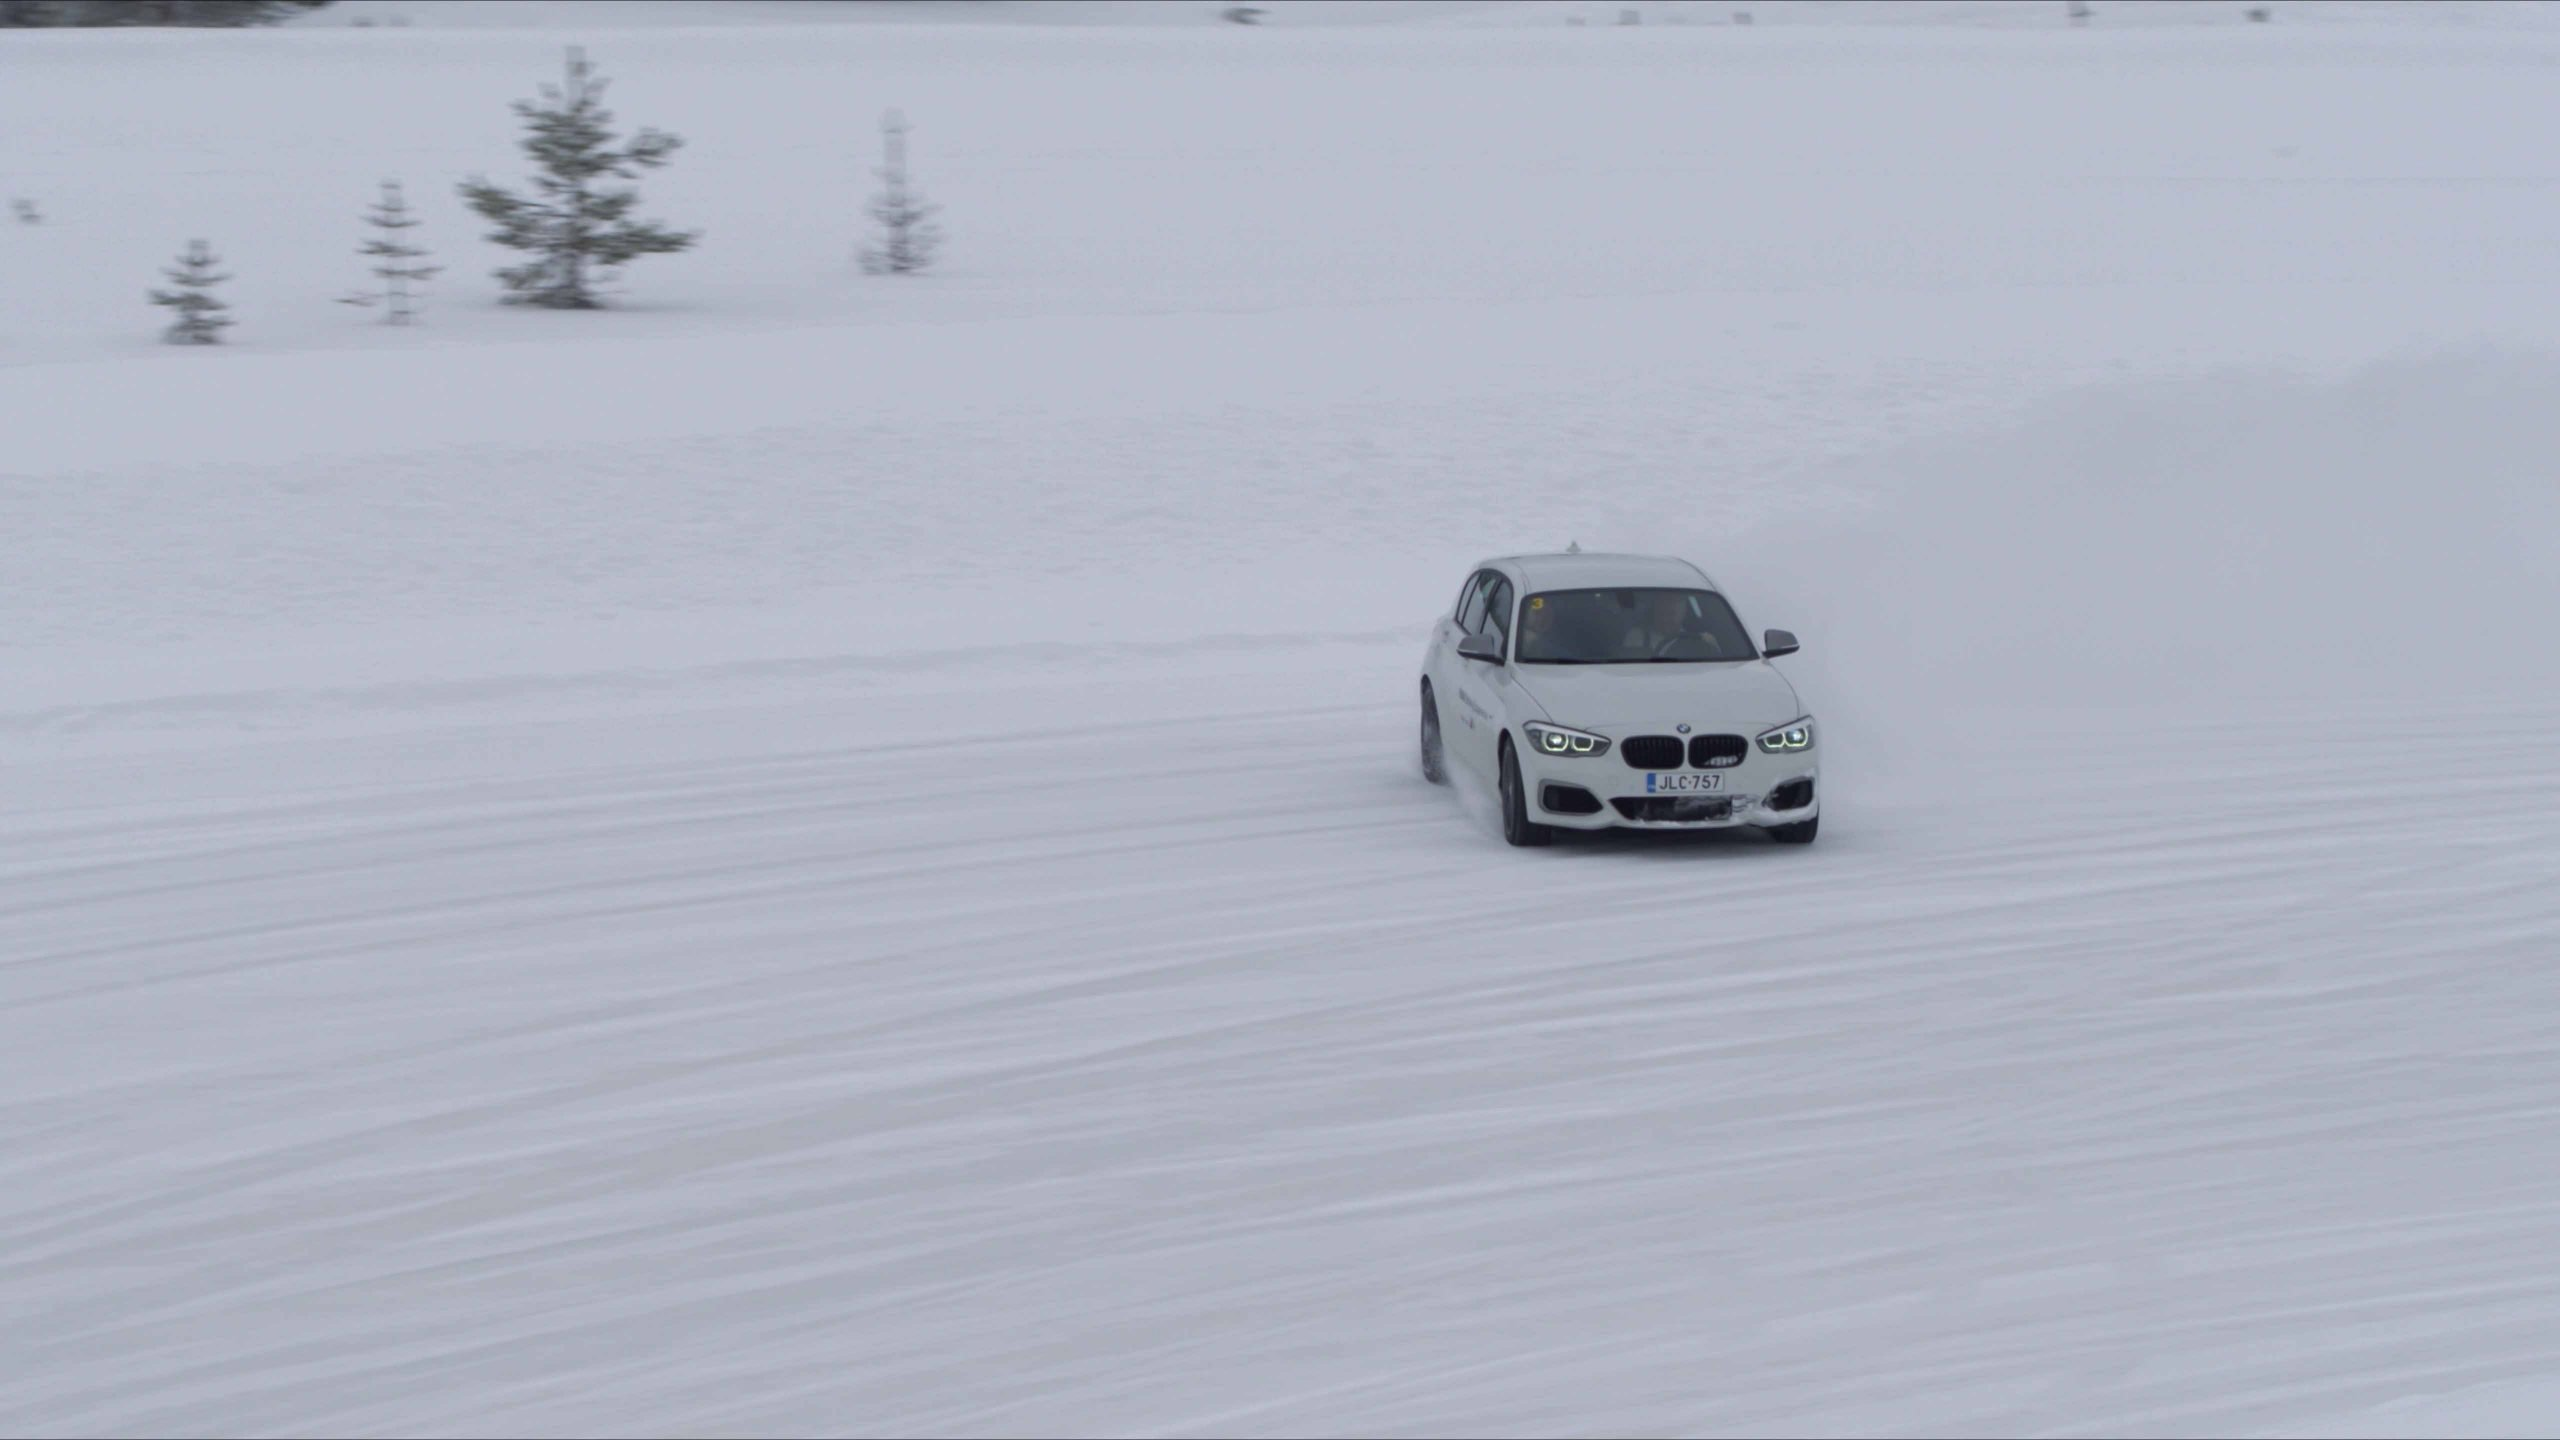 BMW Ice Drifting